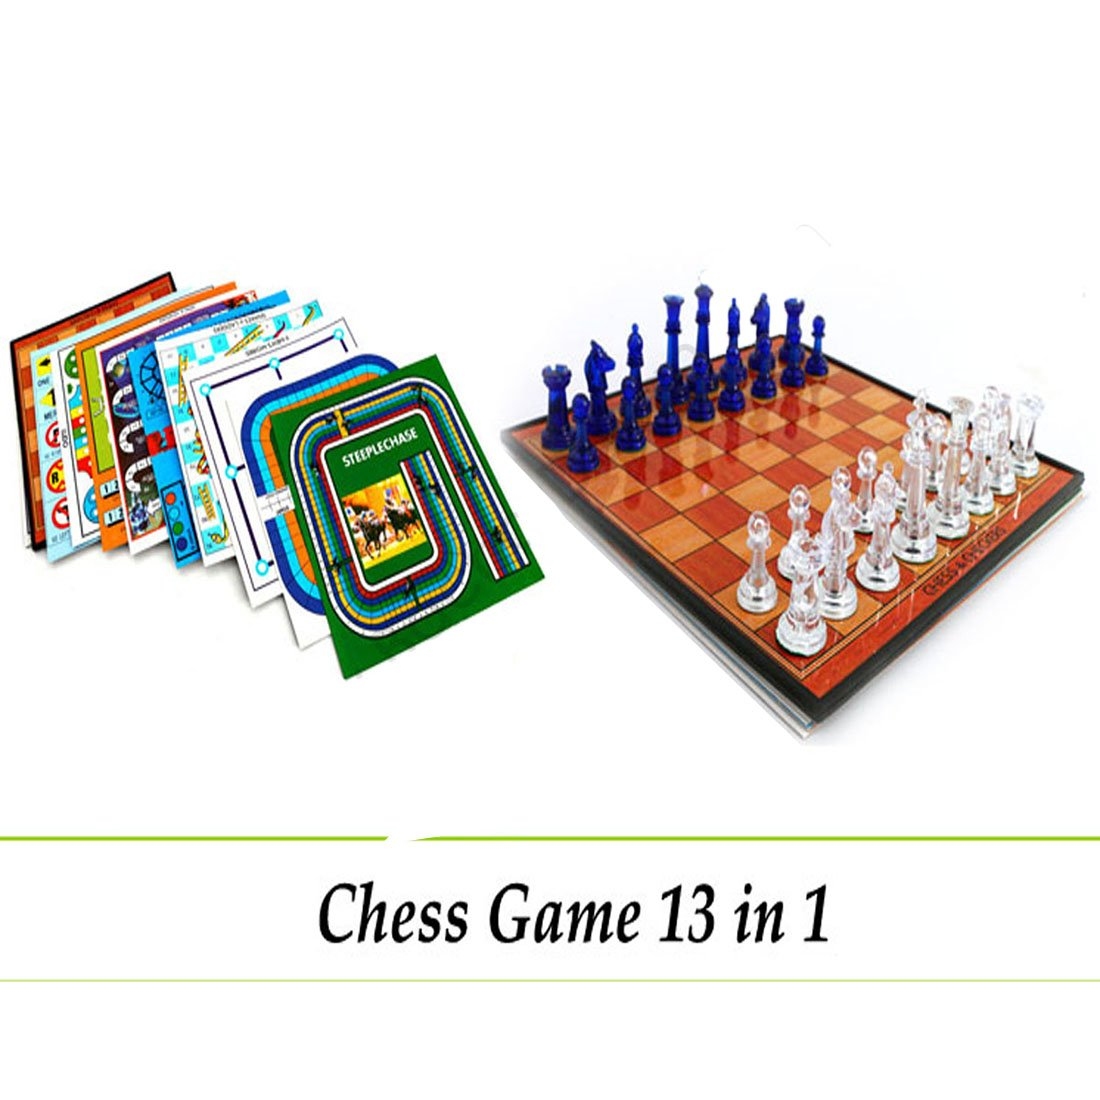 Magnetic Chess Set With 13 More Multi Board Game For Circuit Games Kids Toys